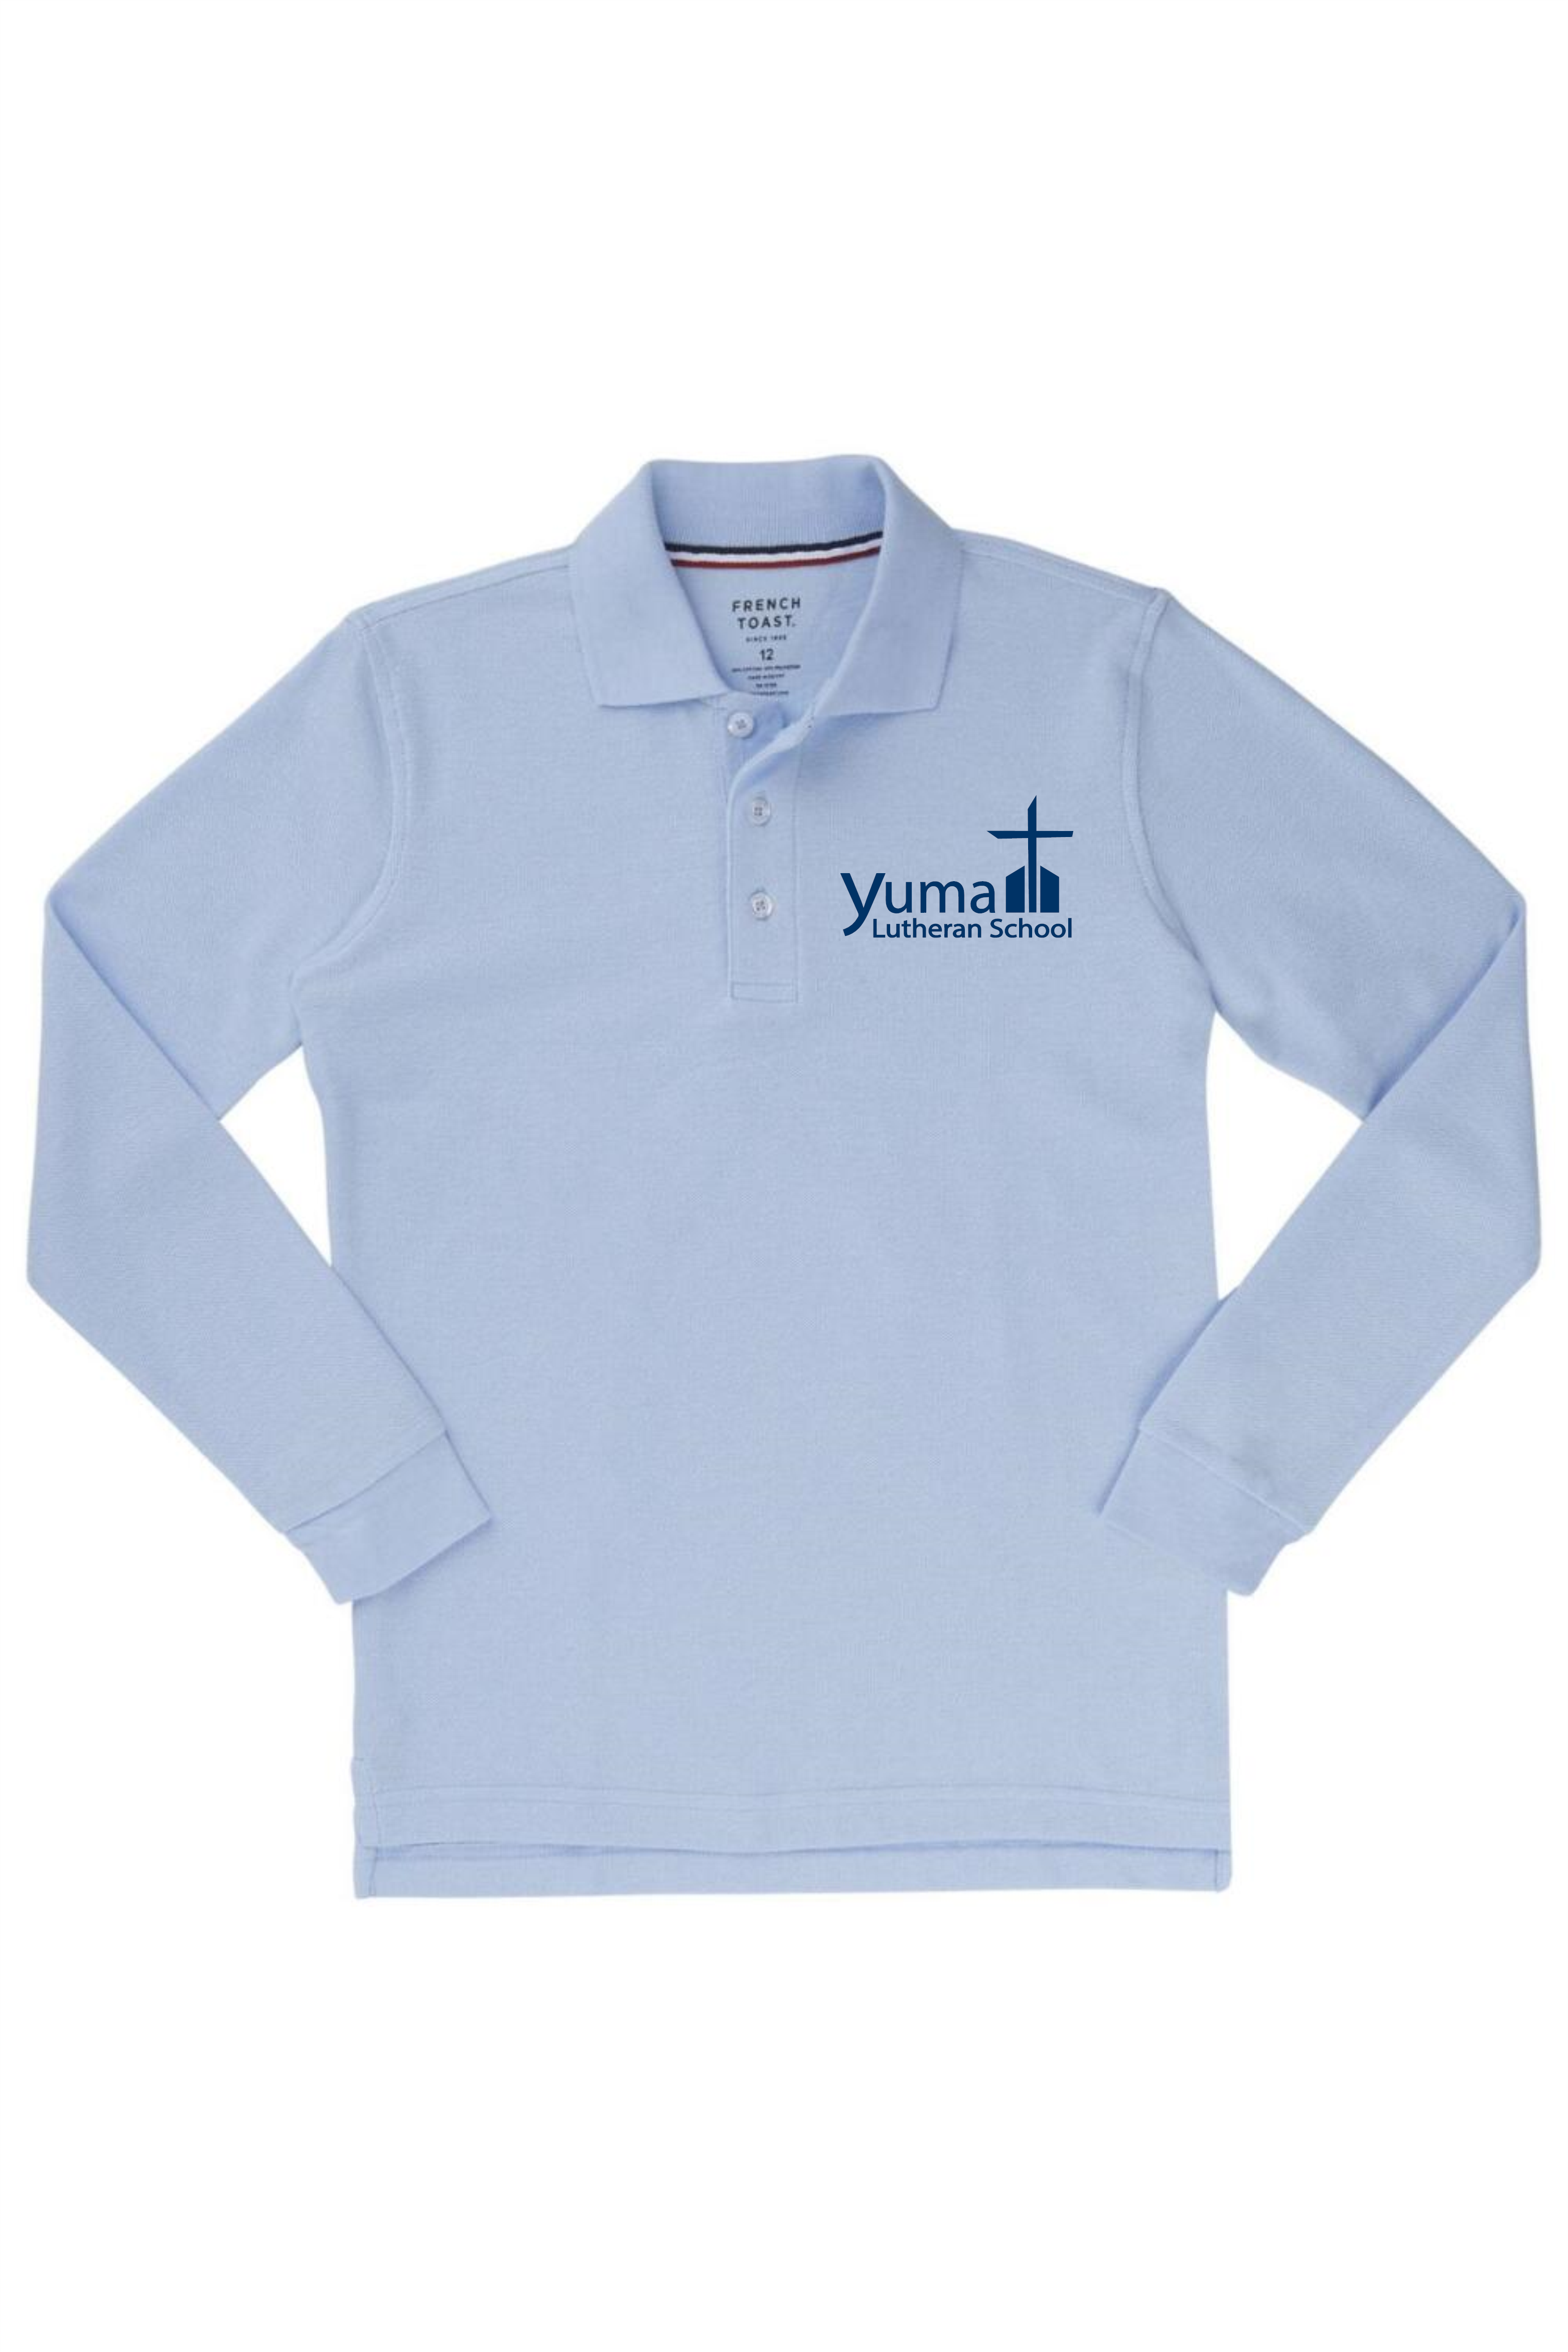 French Toast Boy's Long Sleeve Pique Polo (Polo Size: XS - 4/5, French Toast Polo Color: Lt Blue - YLS)